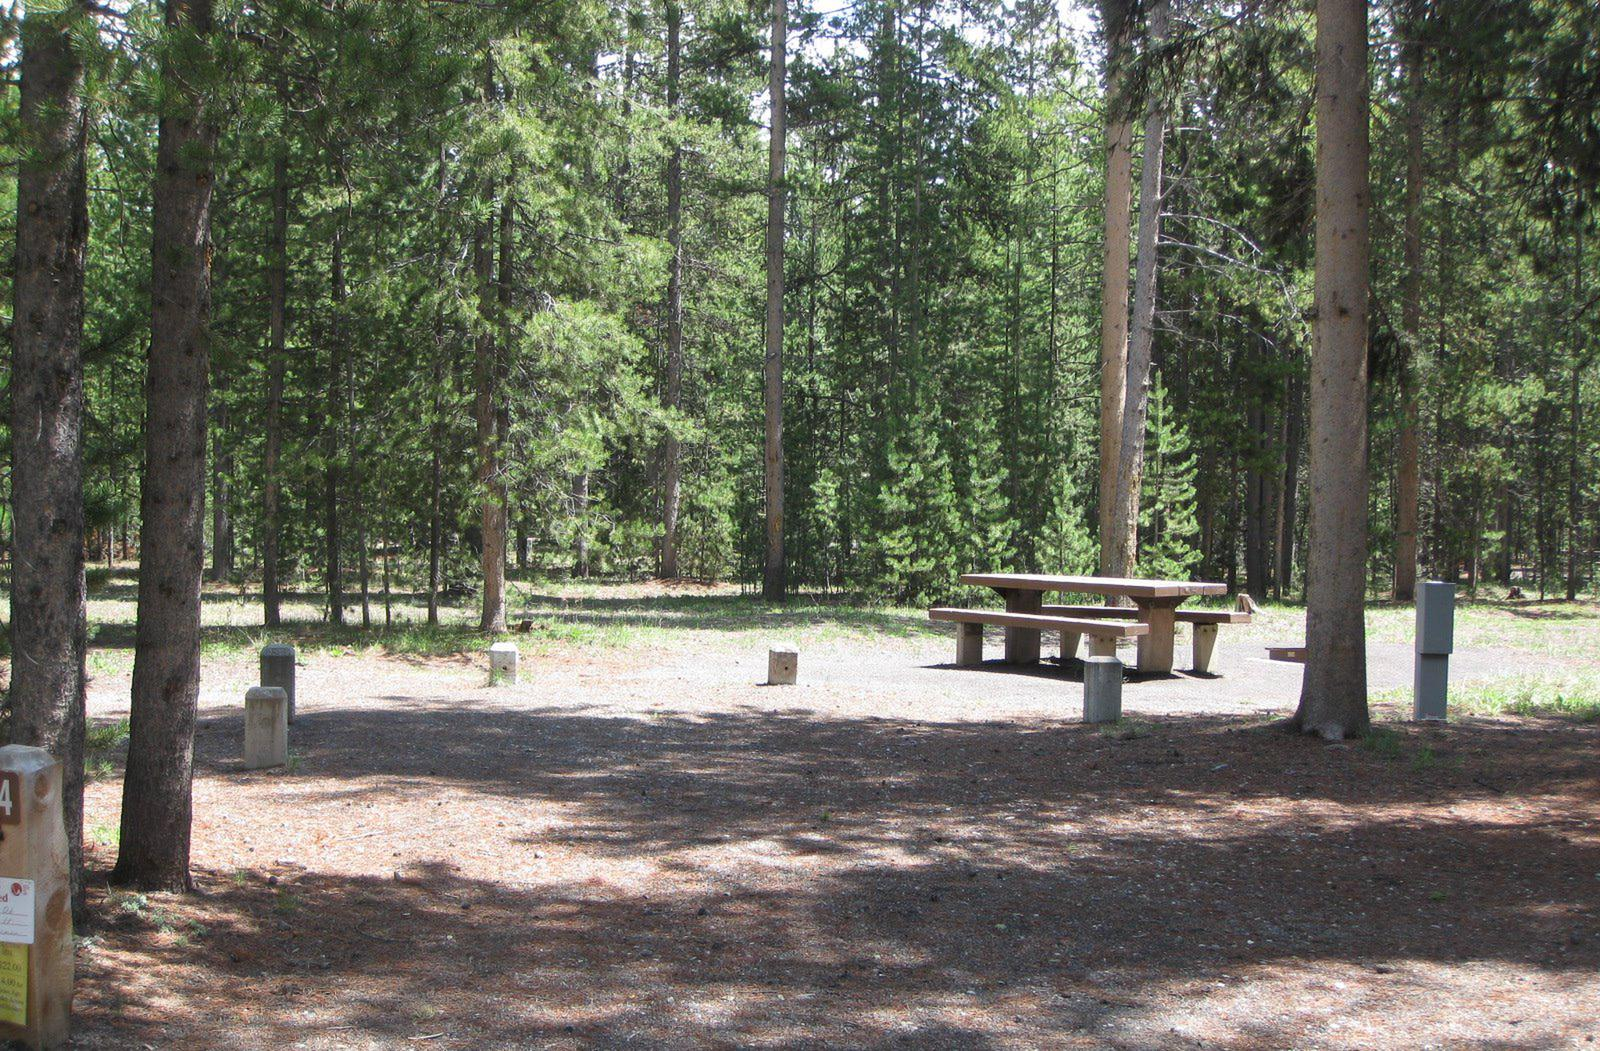 Site C4, surrounded by pine trees, picnic table & fire ringSite C4